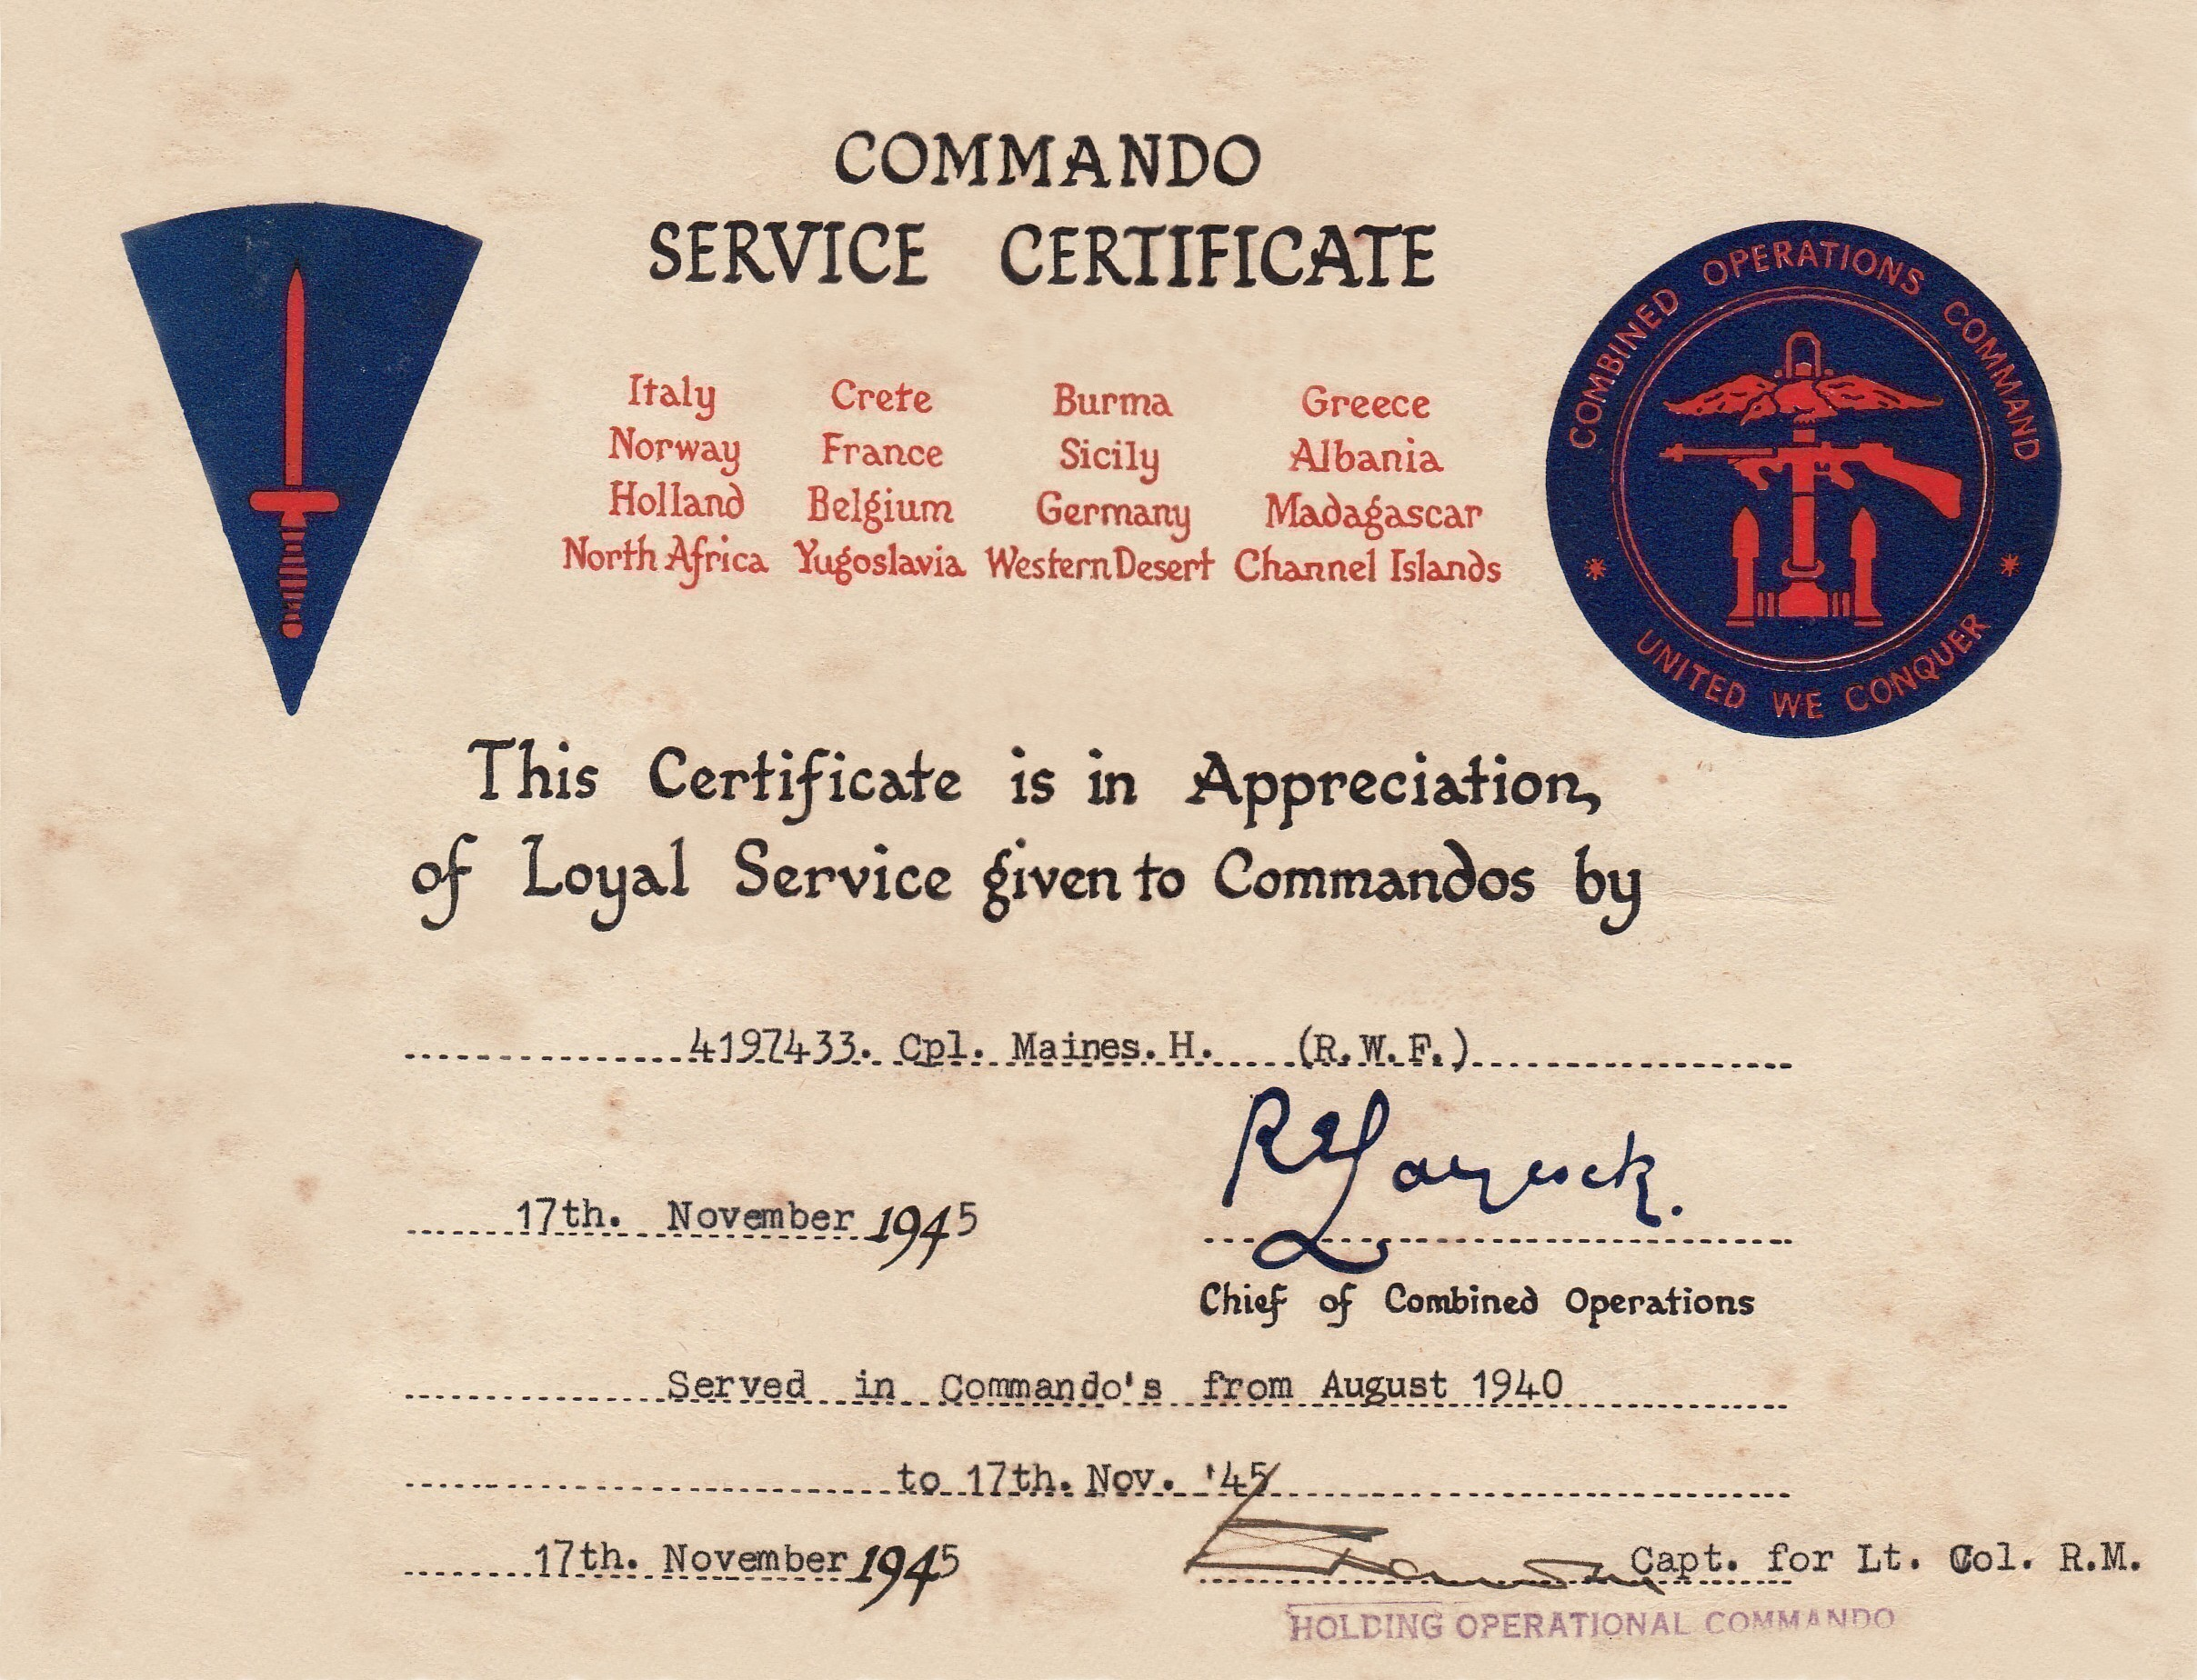 Commando Service Certificate-Hugh Maines-Stage 9A